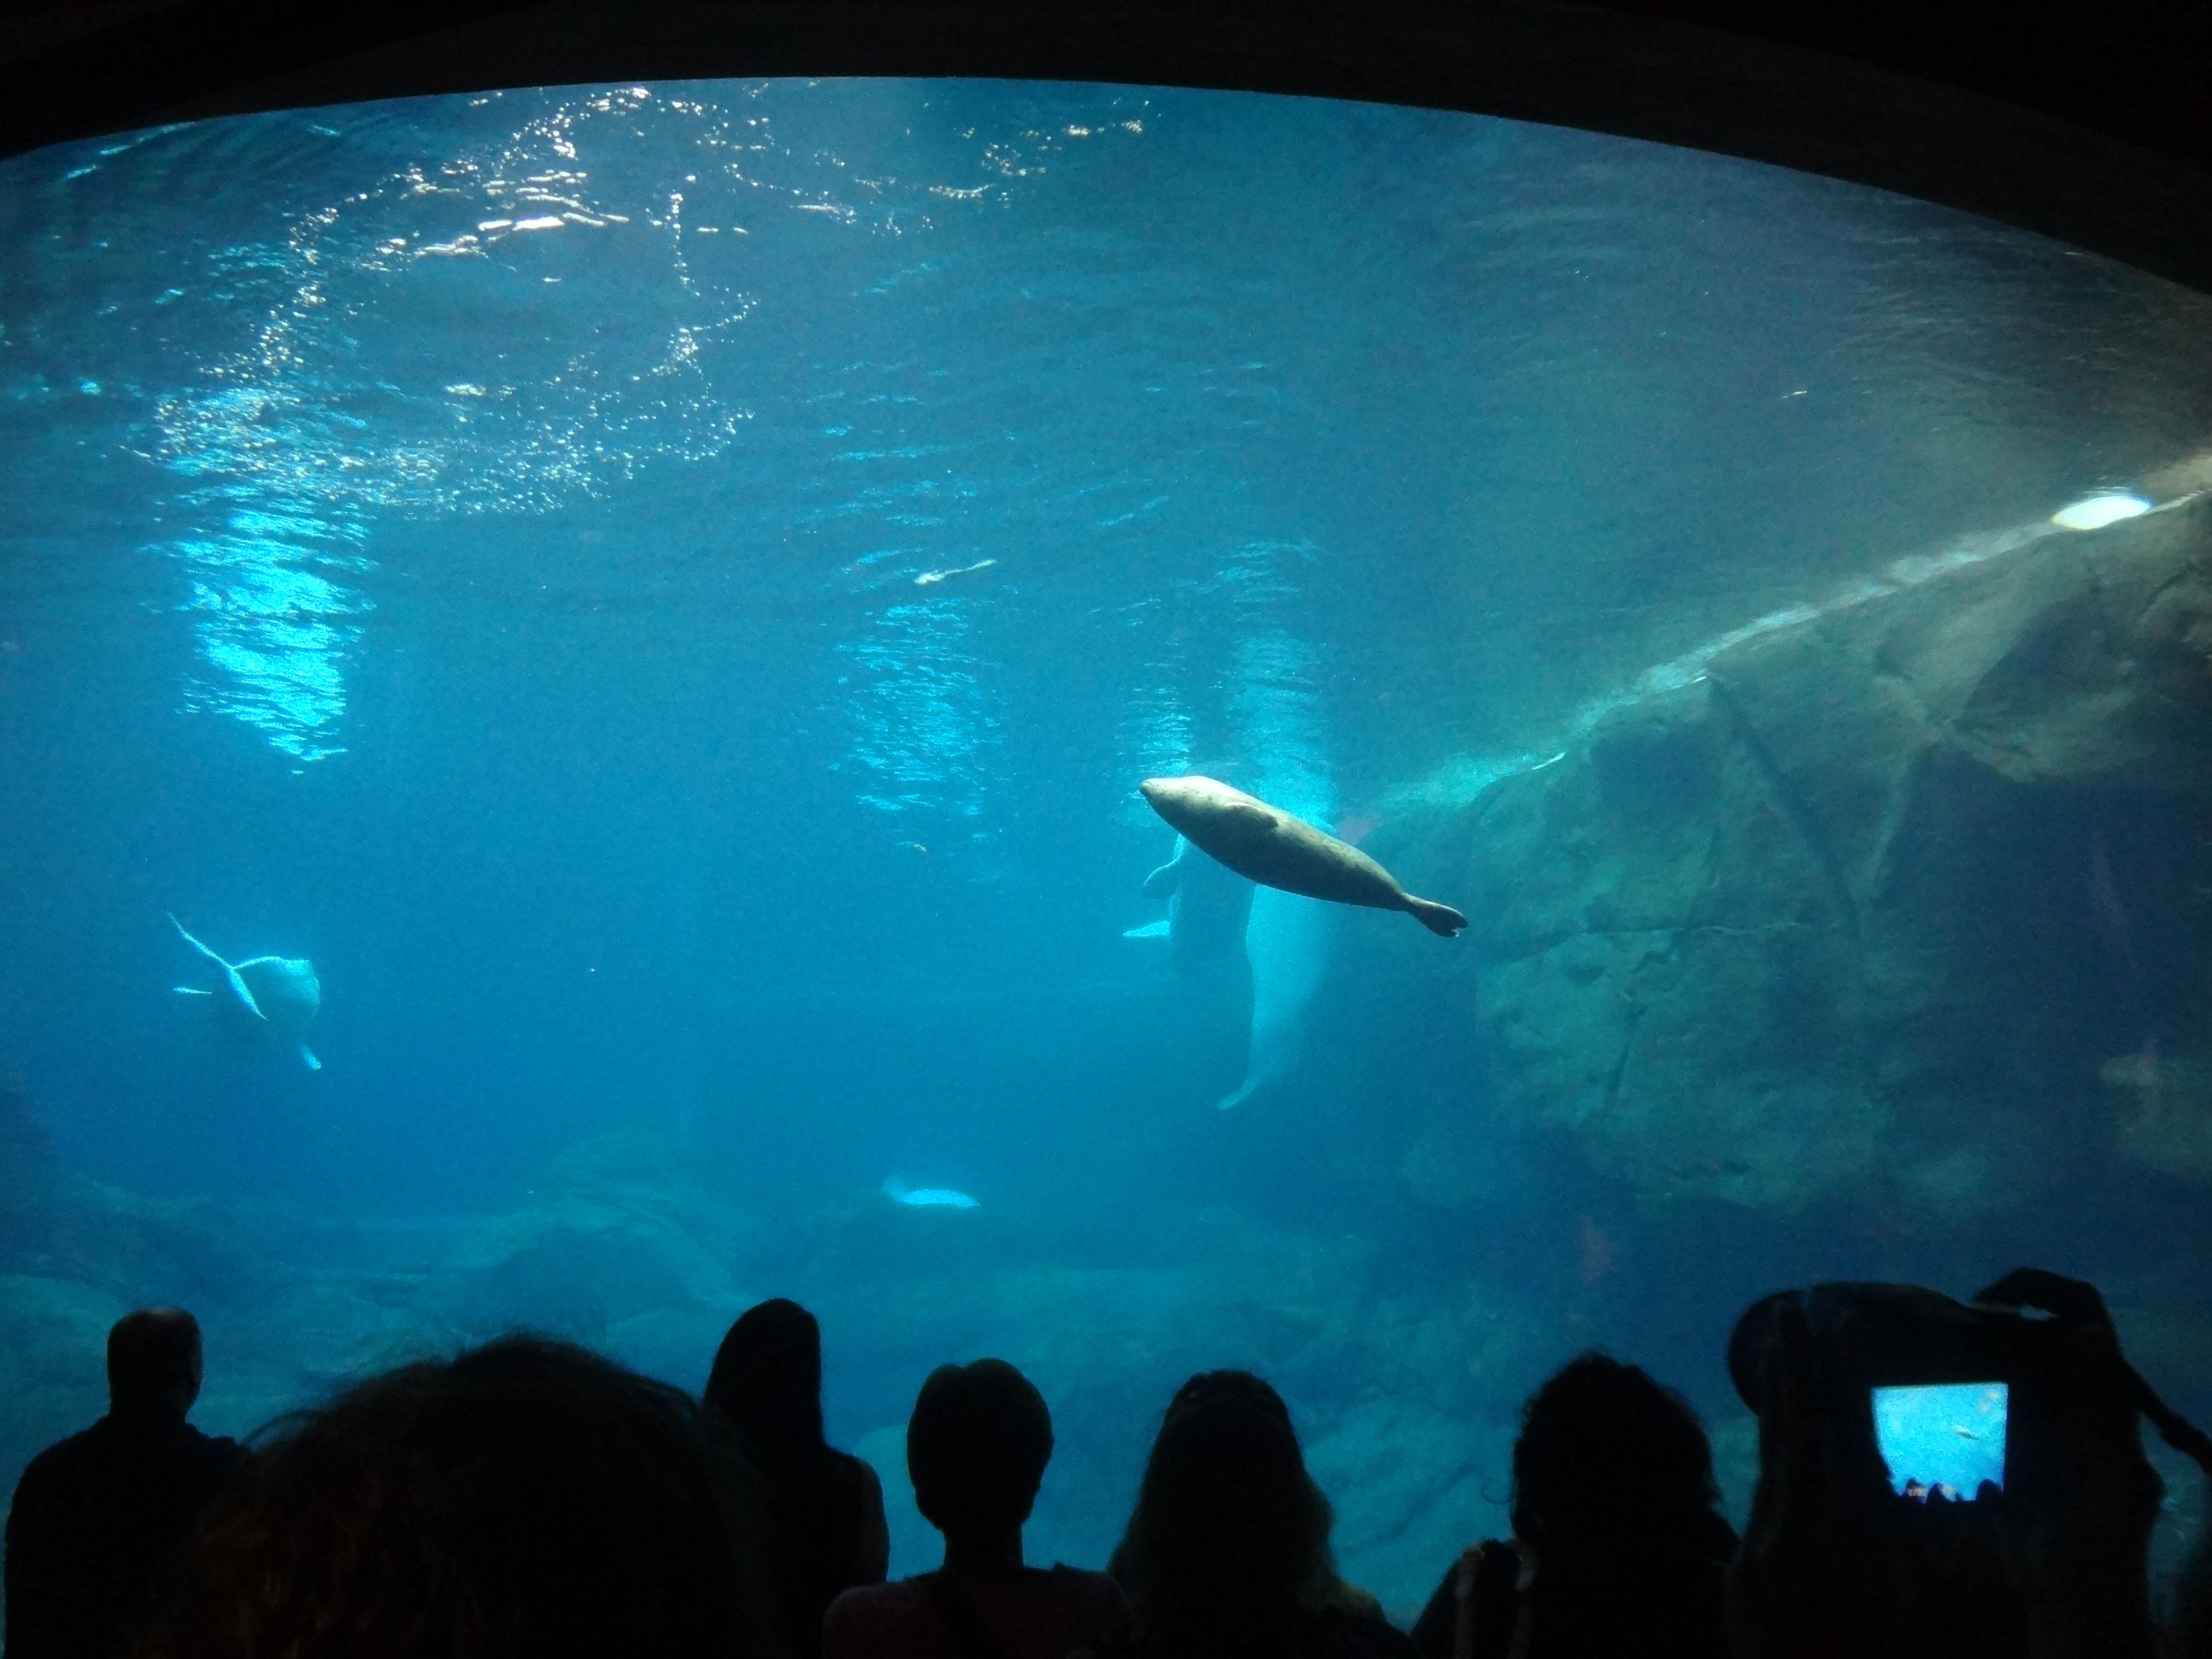 The SEA LIFE centre at Chessington World of Adventures